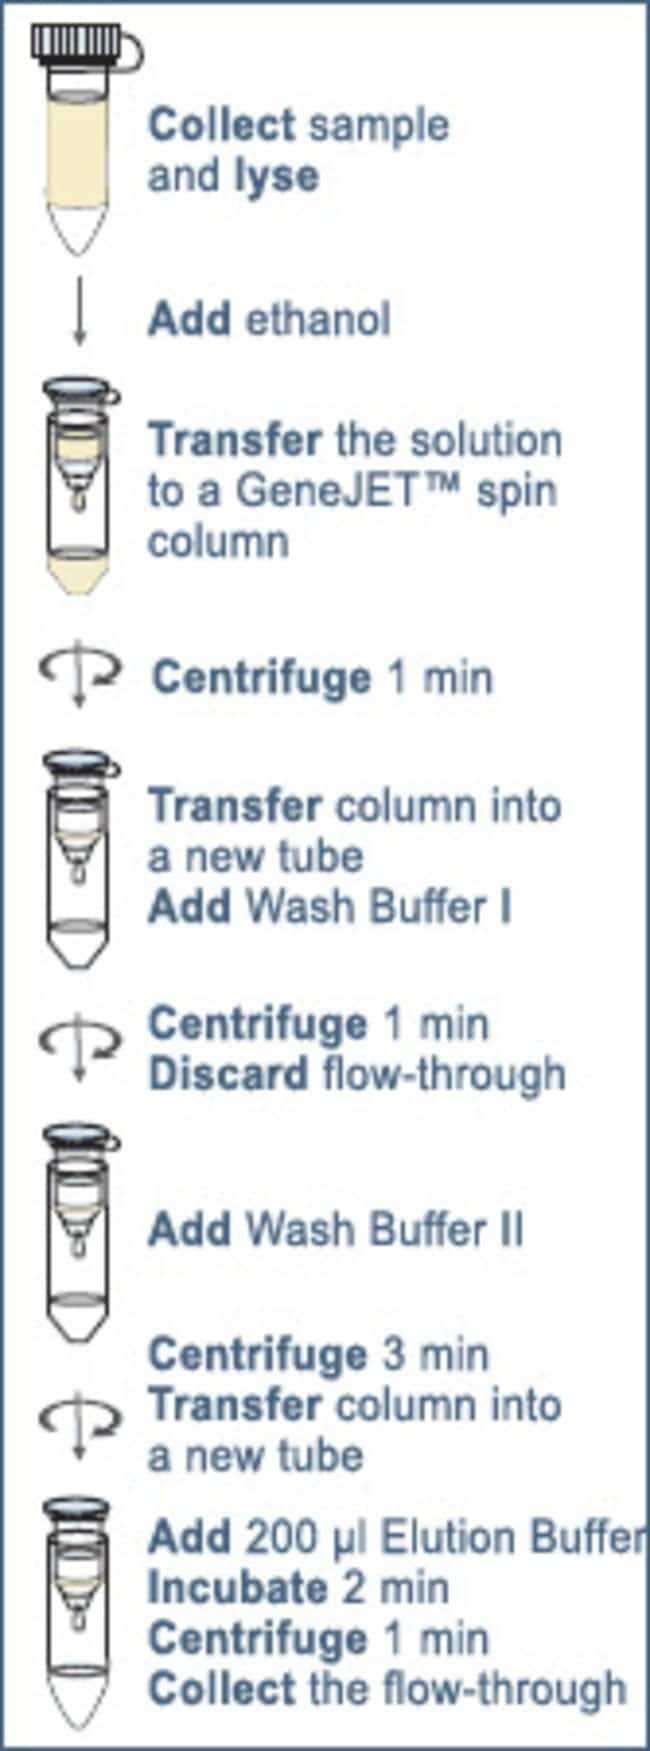 Overview of purification procedure